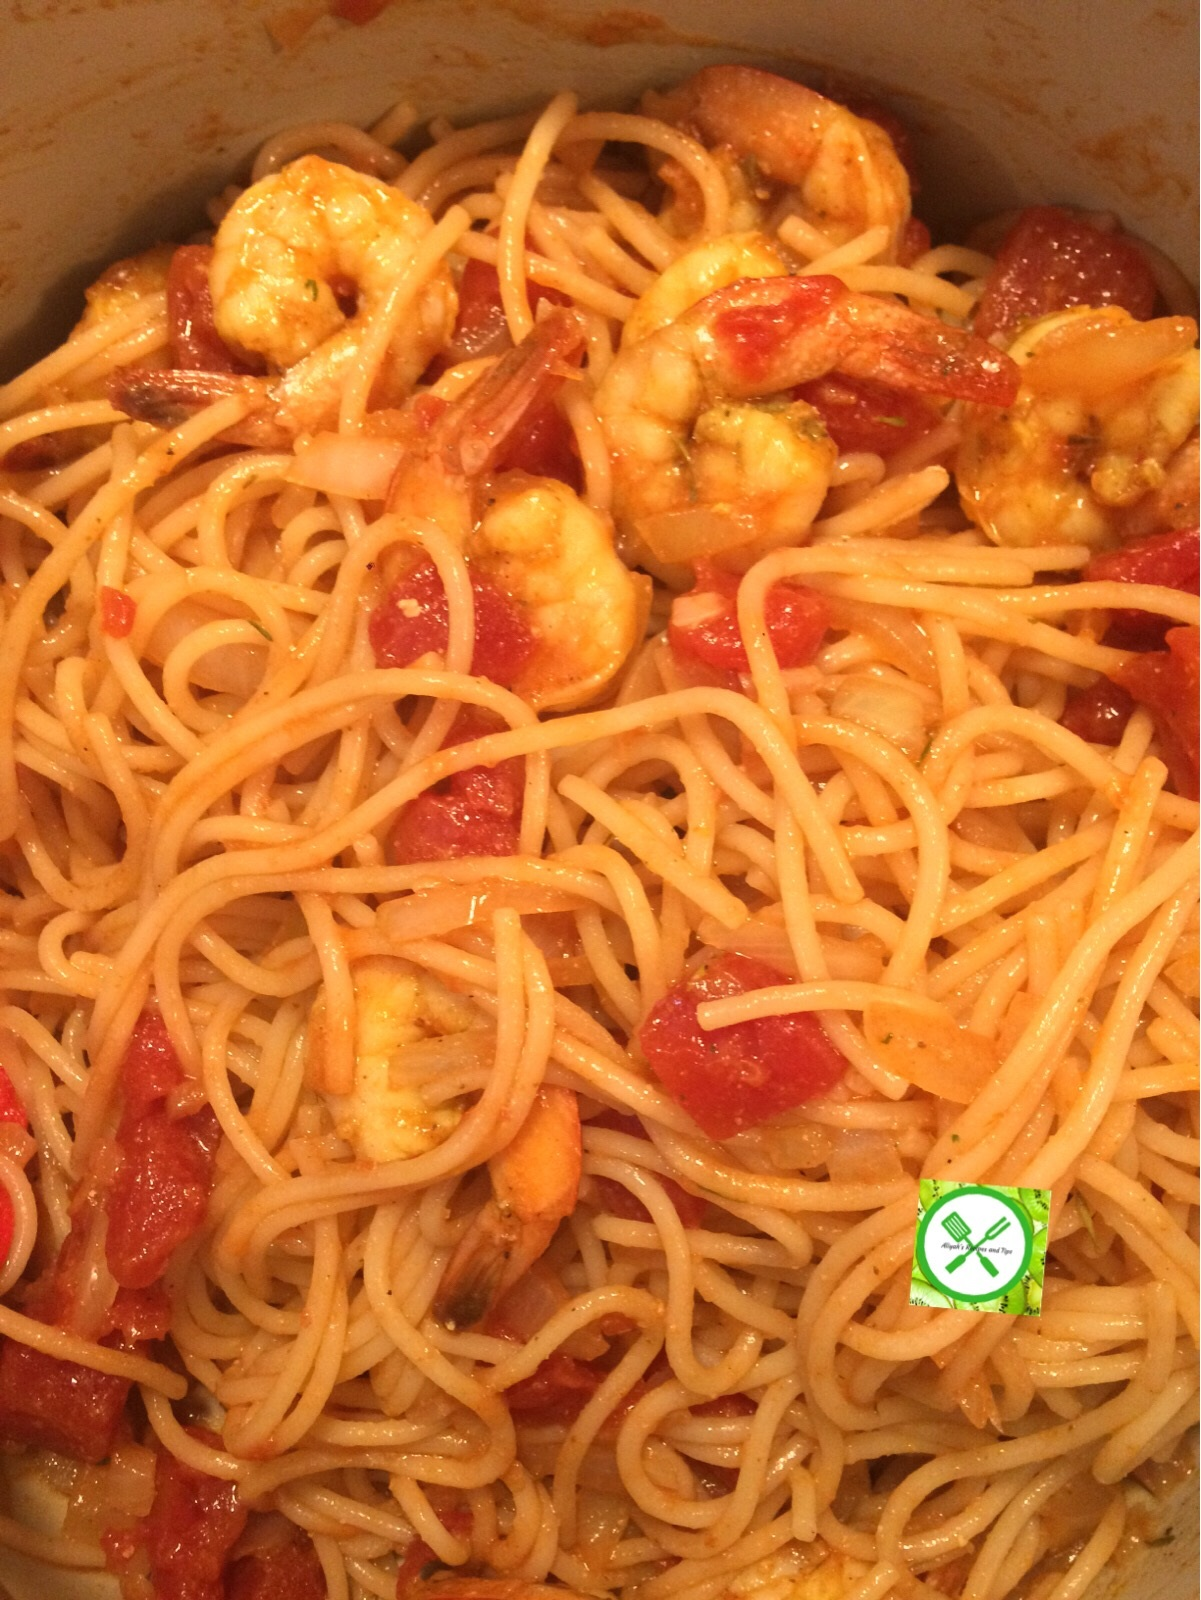 Shrimps scampi cooked pasta